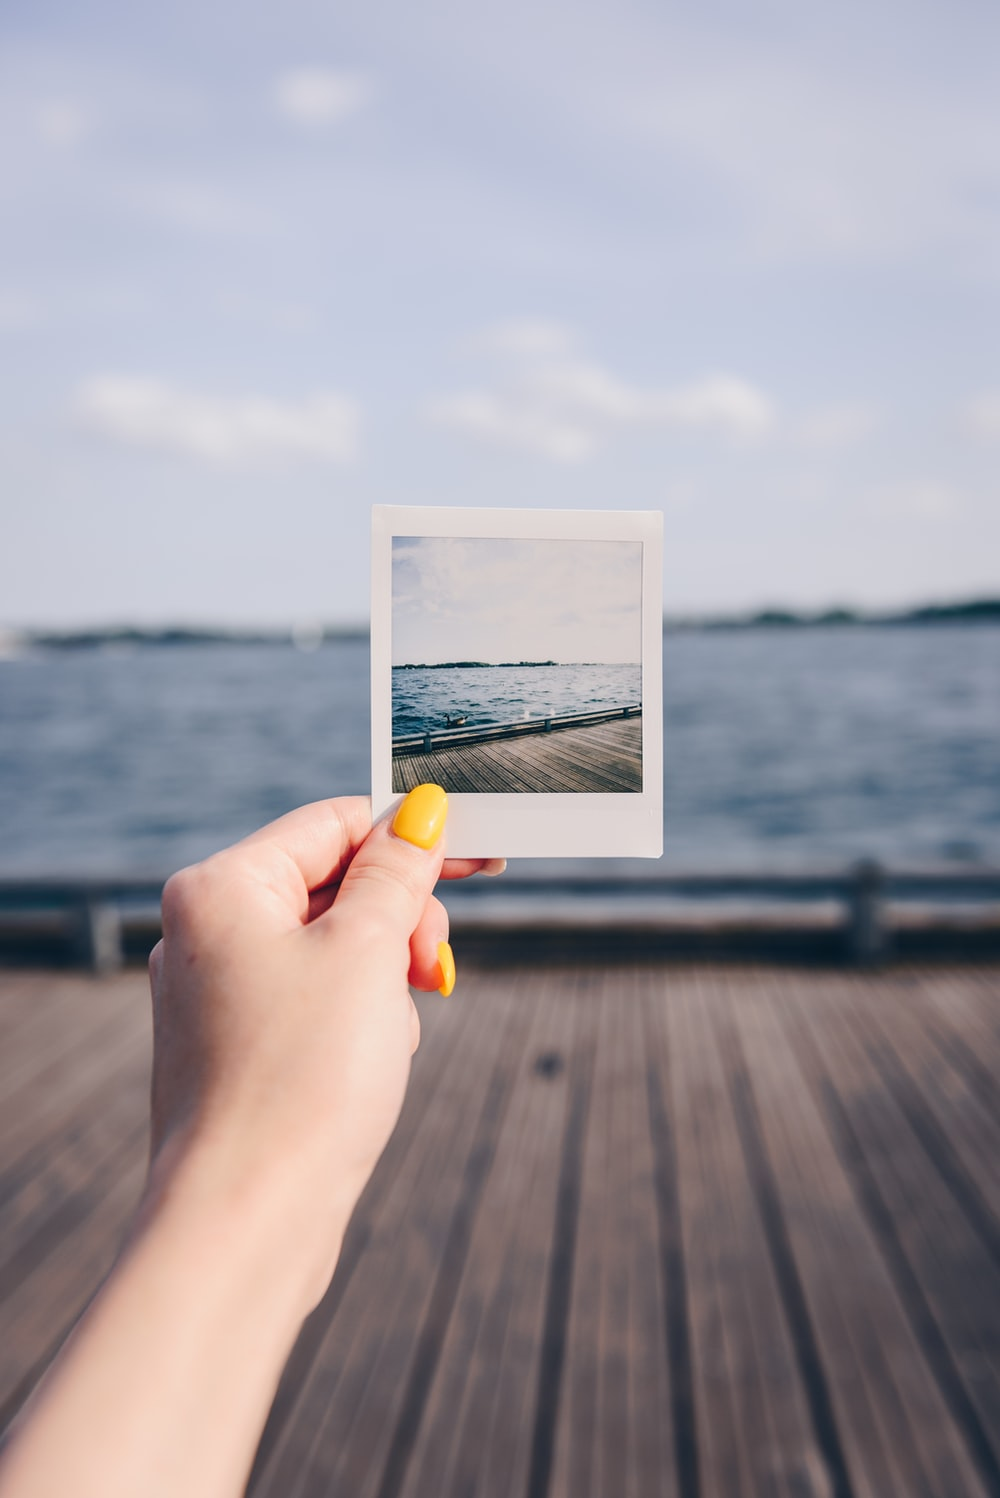 person holding white picture of body of water during daytime